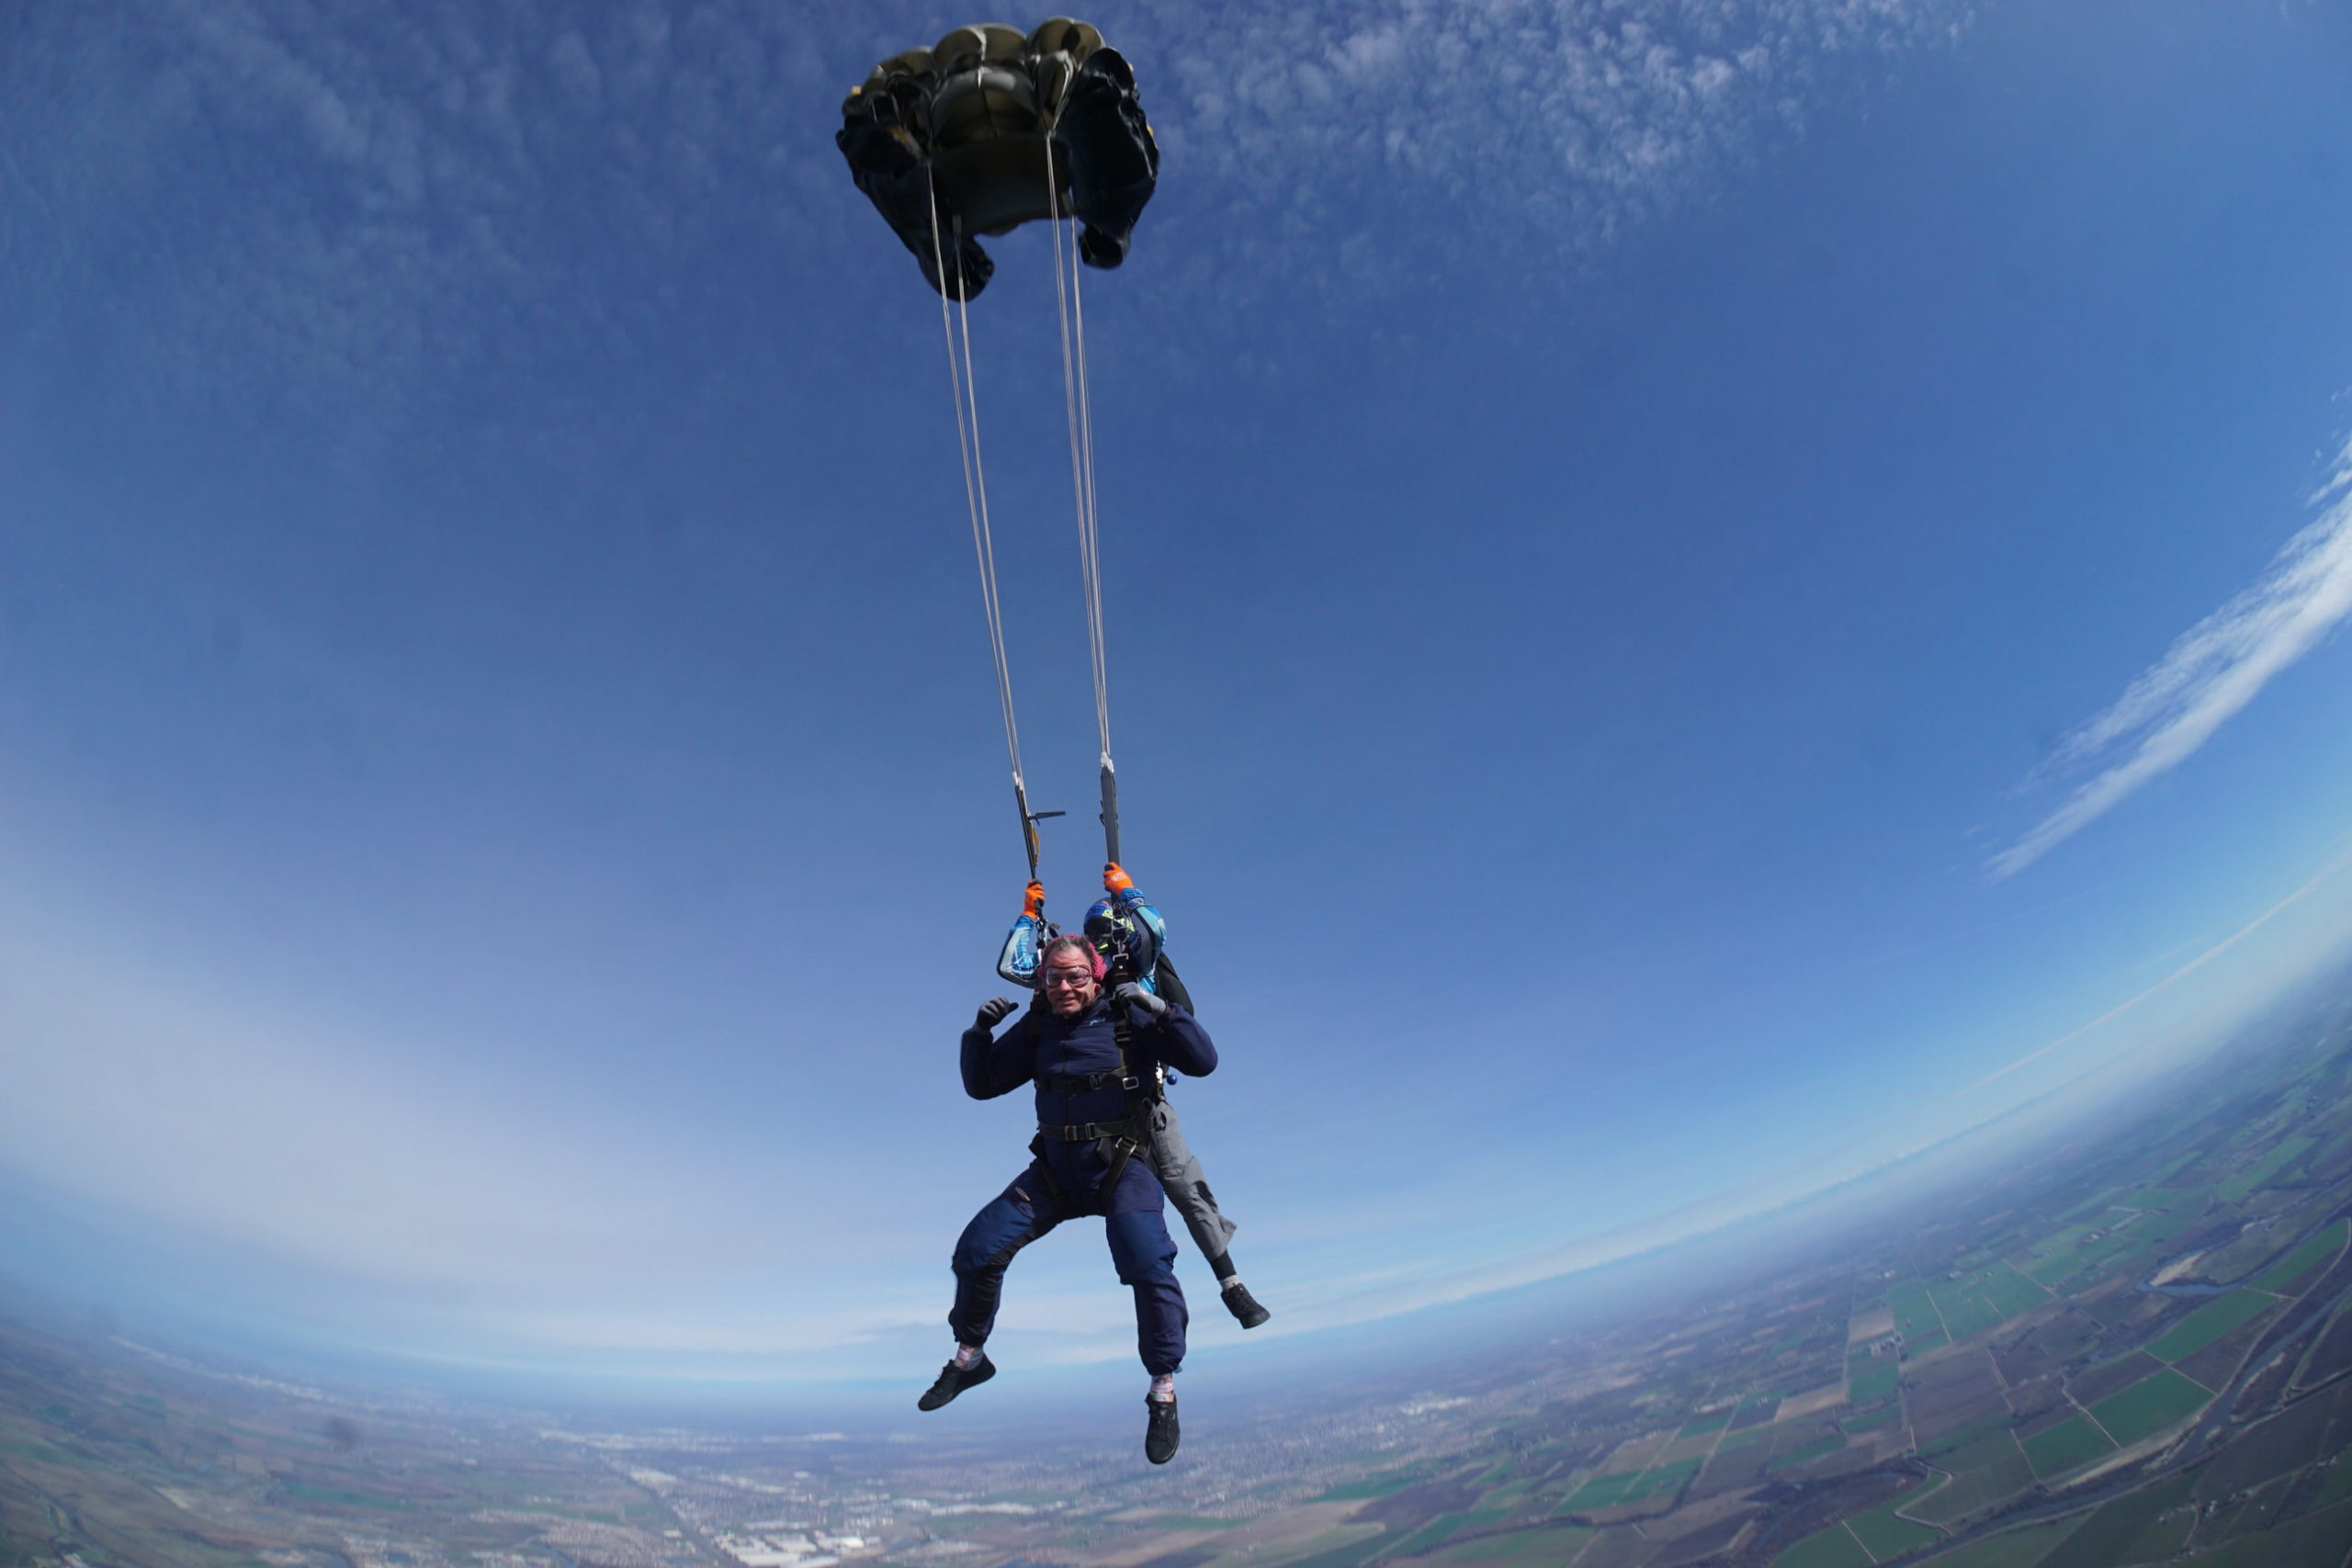 when do skydivers pull the parachute